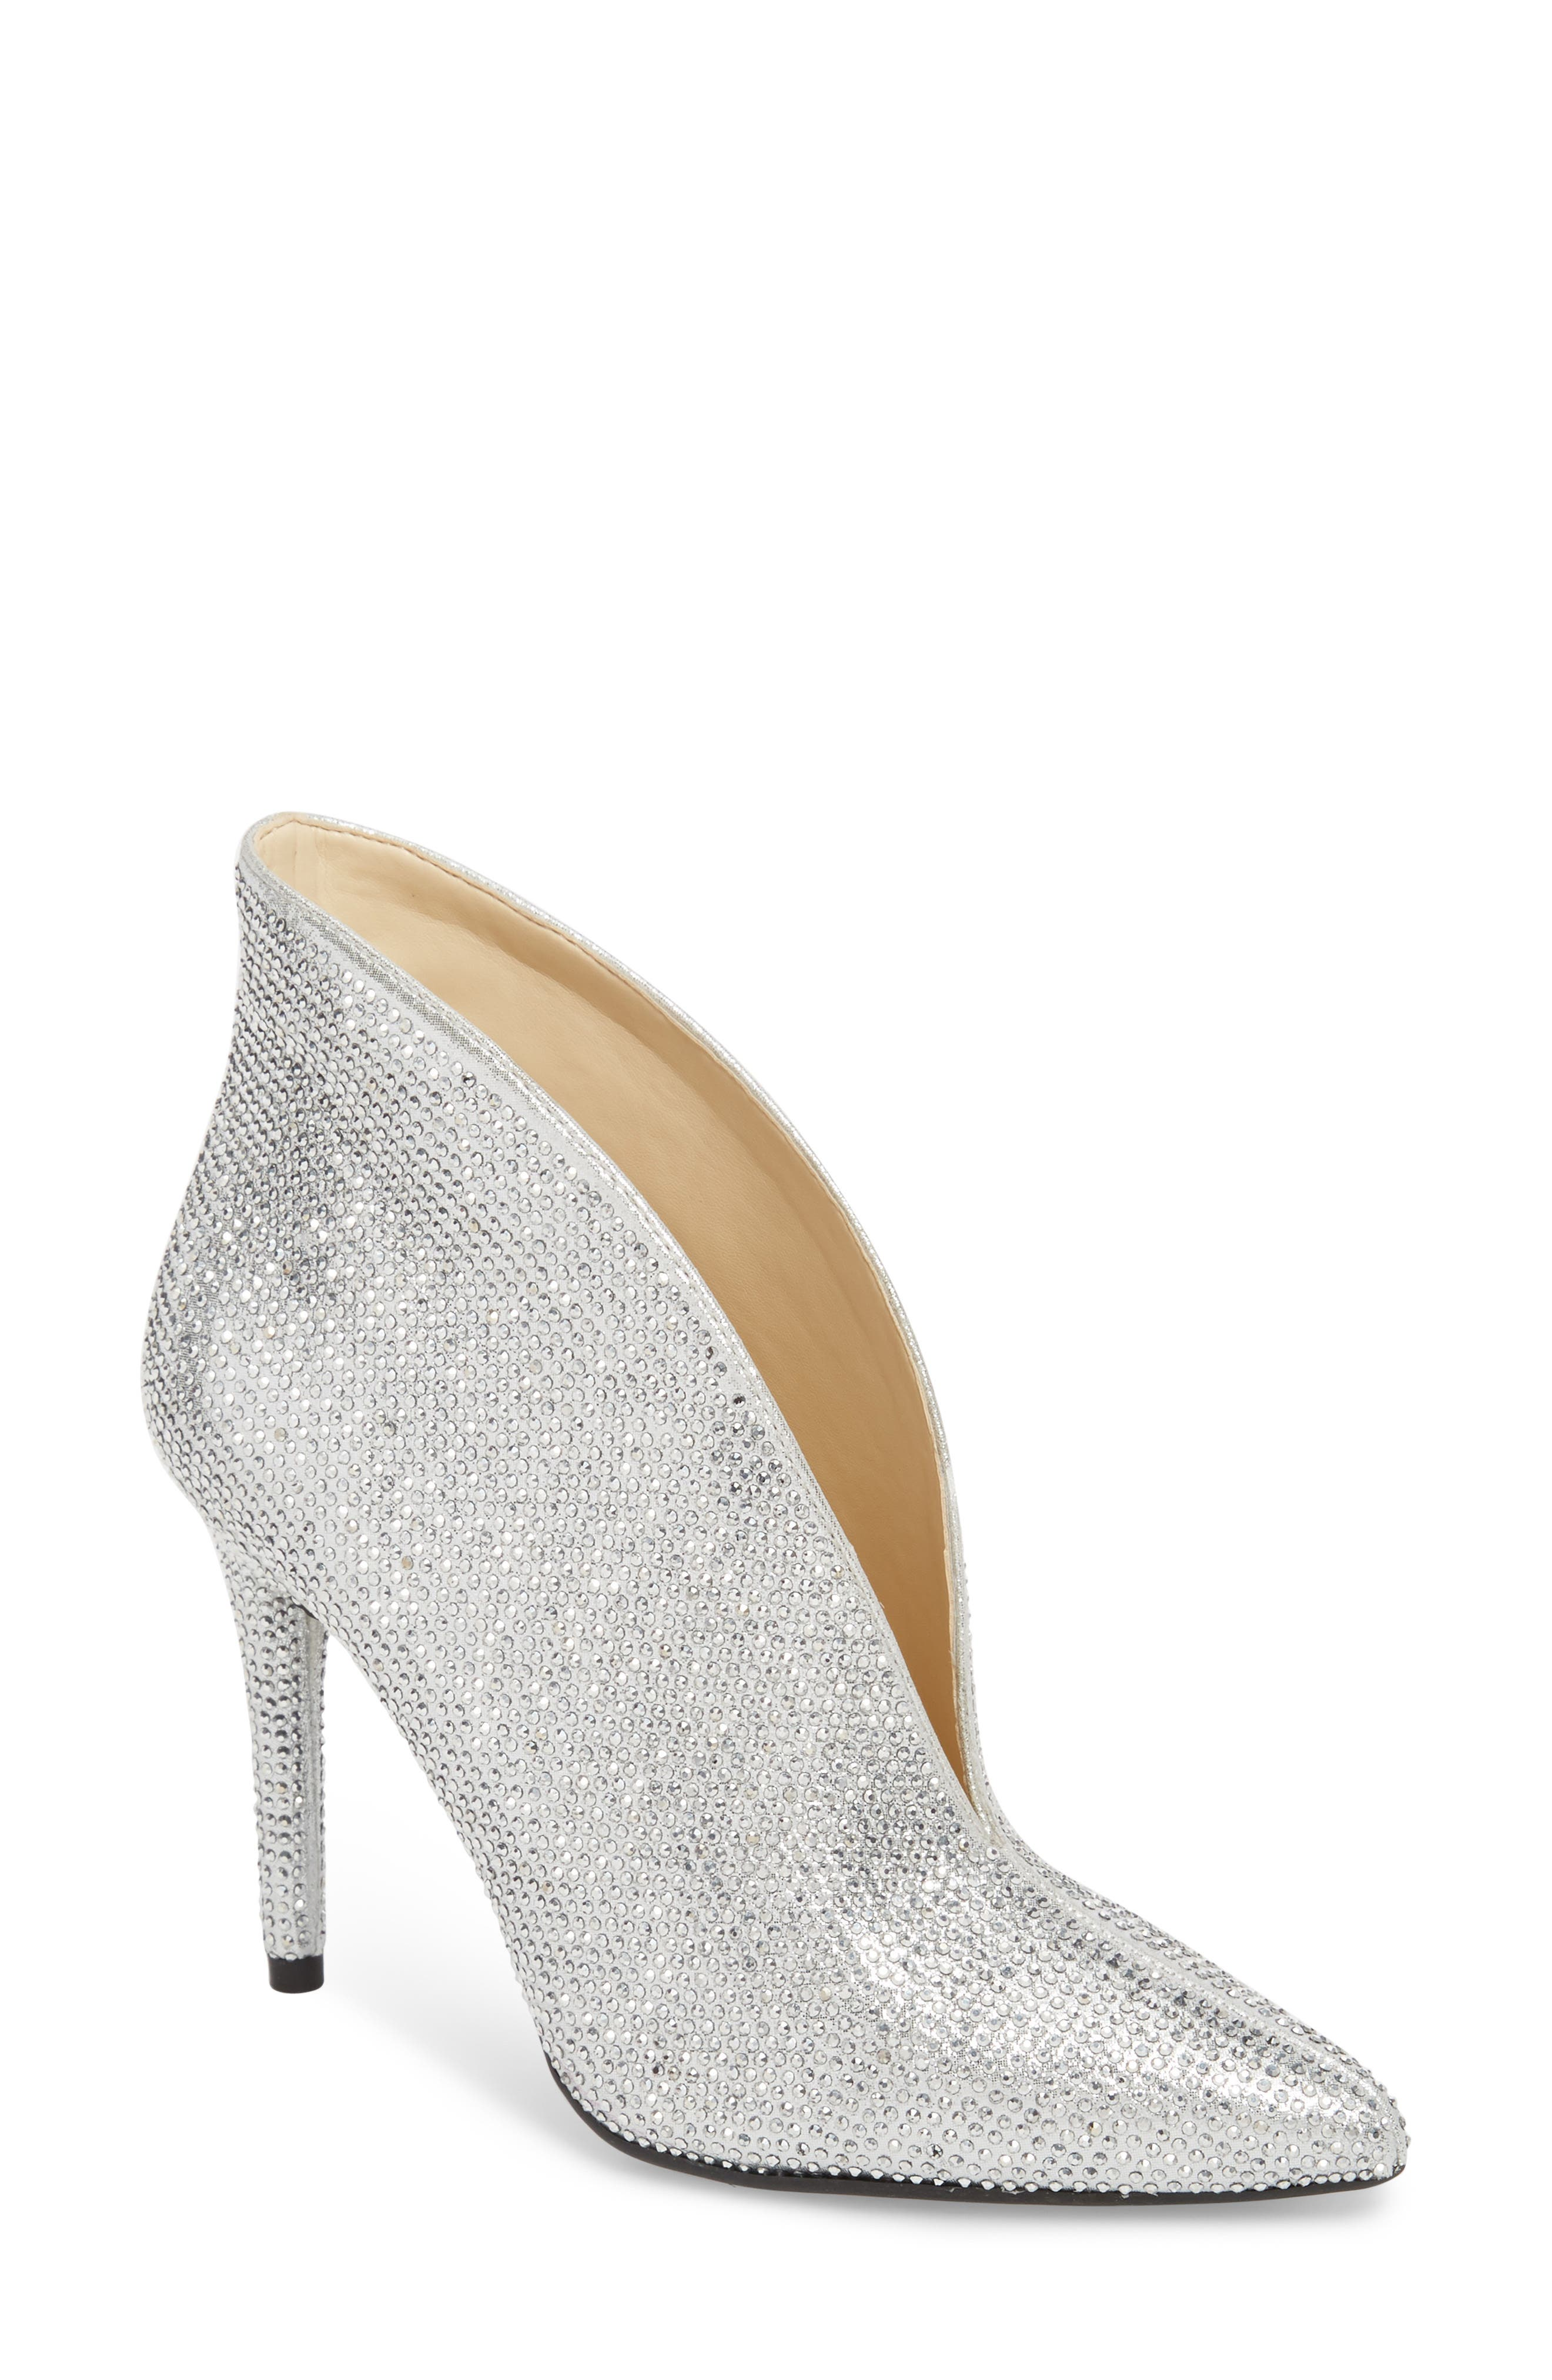 Lasnia Embellished Bootie,                             Main thumbnail 2, color,